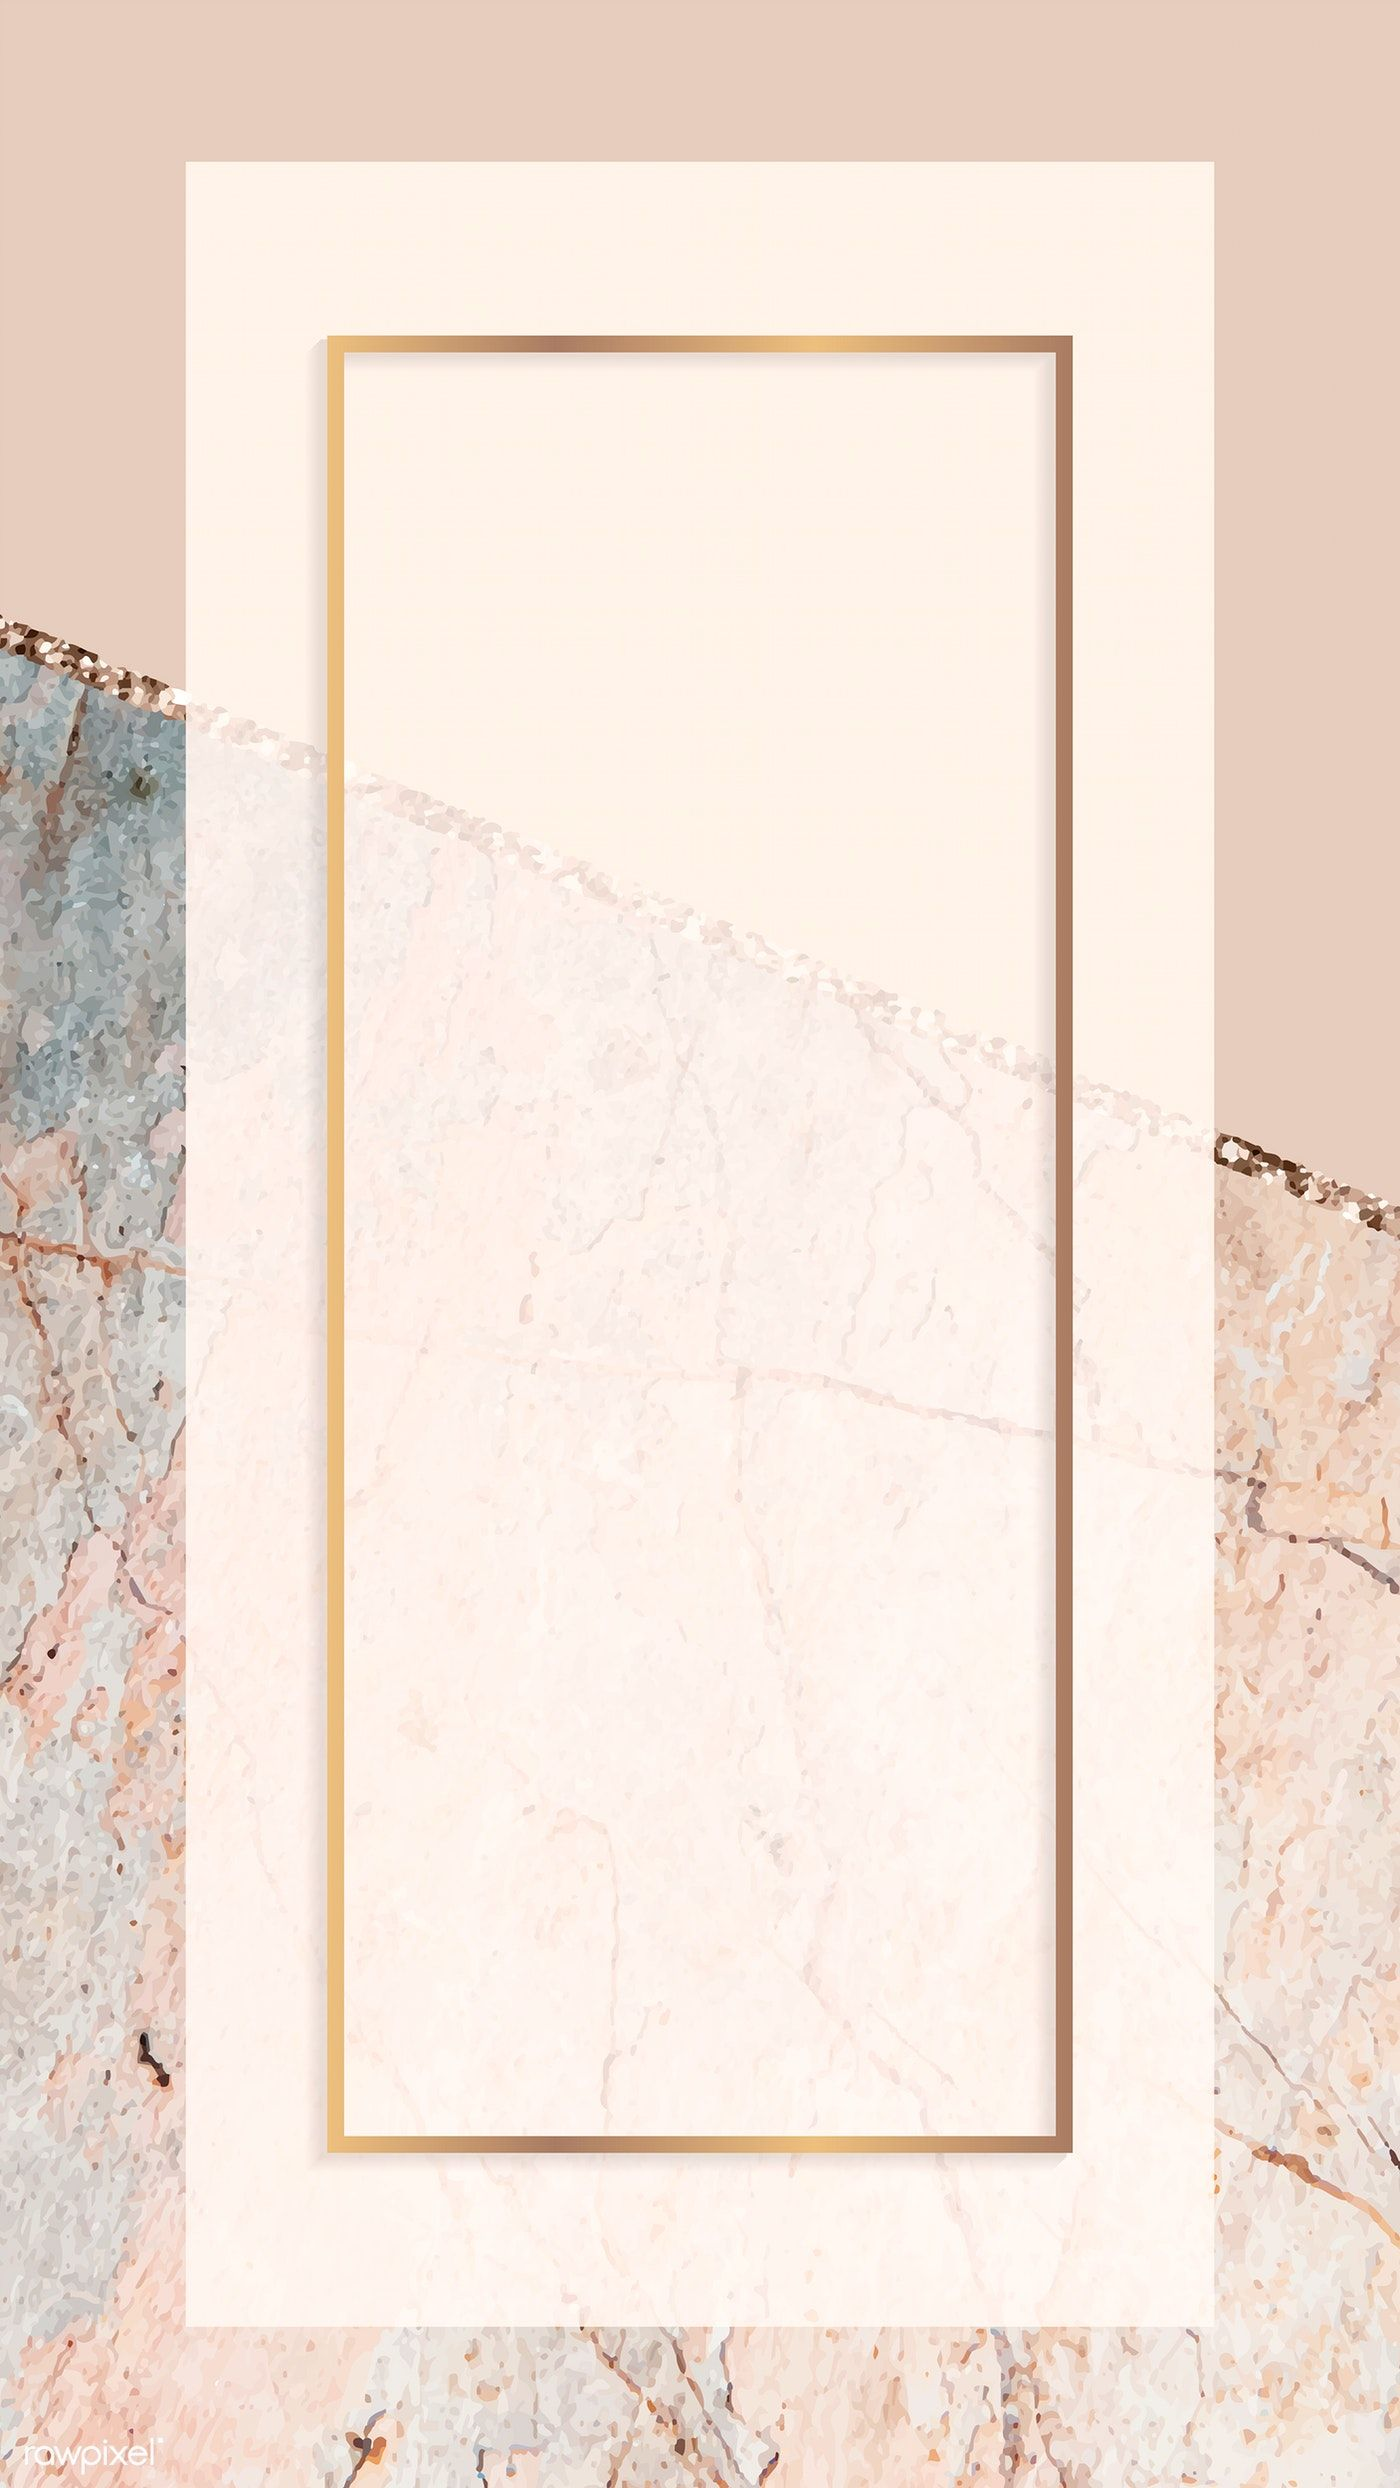 Get Top Marble Phone Wallpaper HD 2020 by rawpixel.com